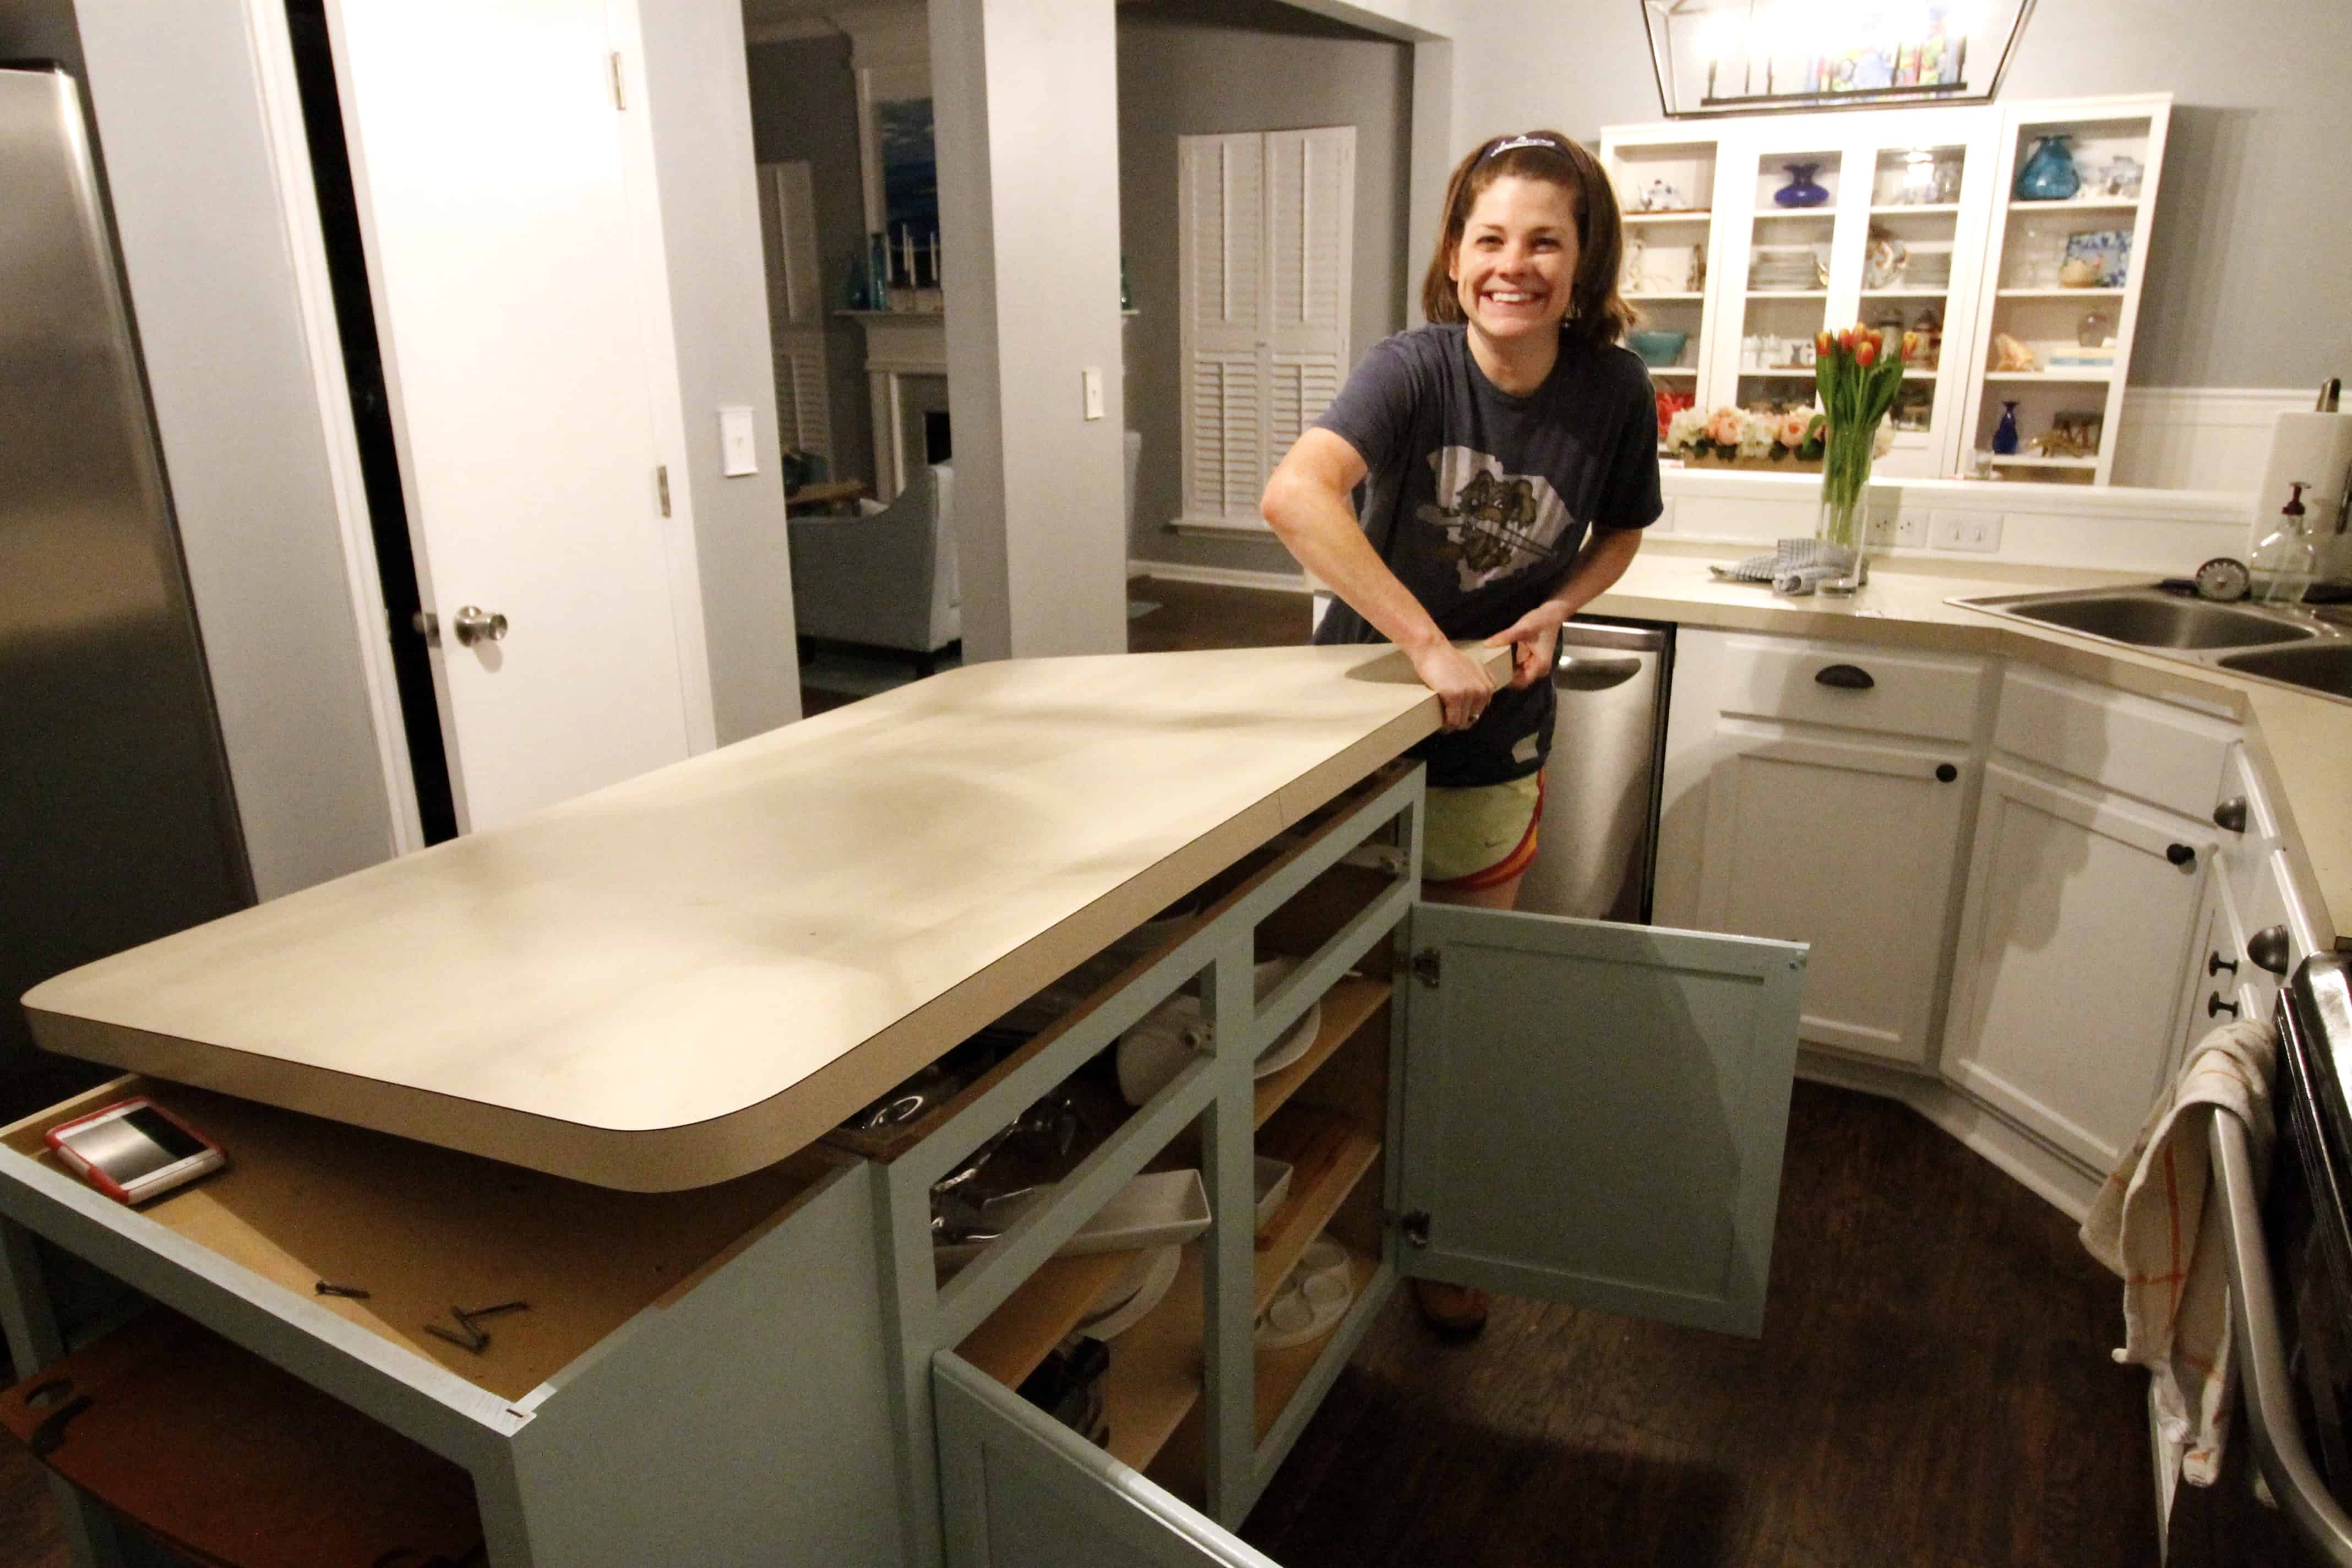 How to Remove Old Laminate Countertops & Backsplash ...